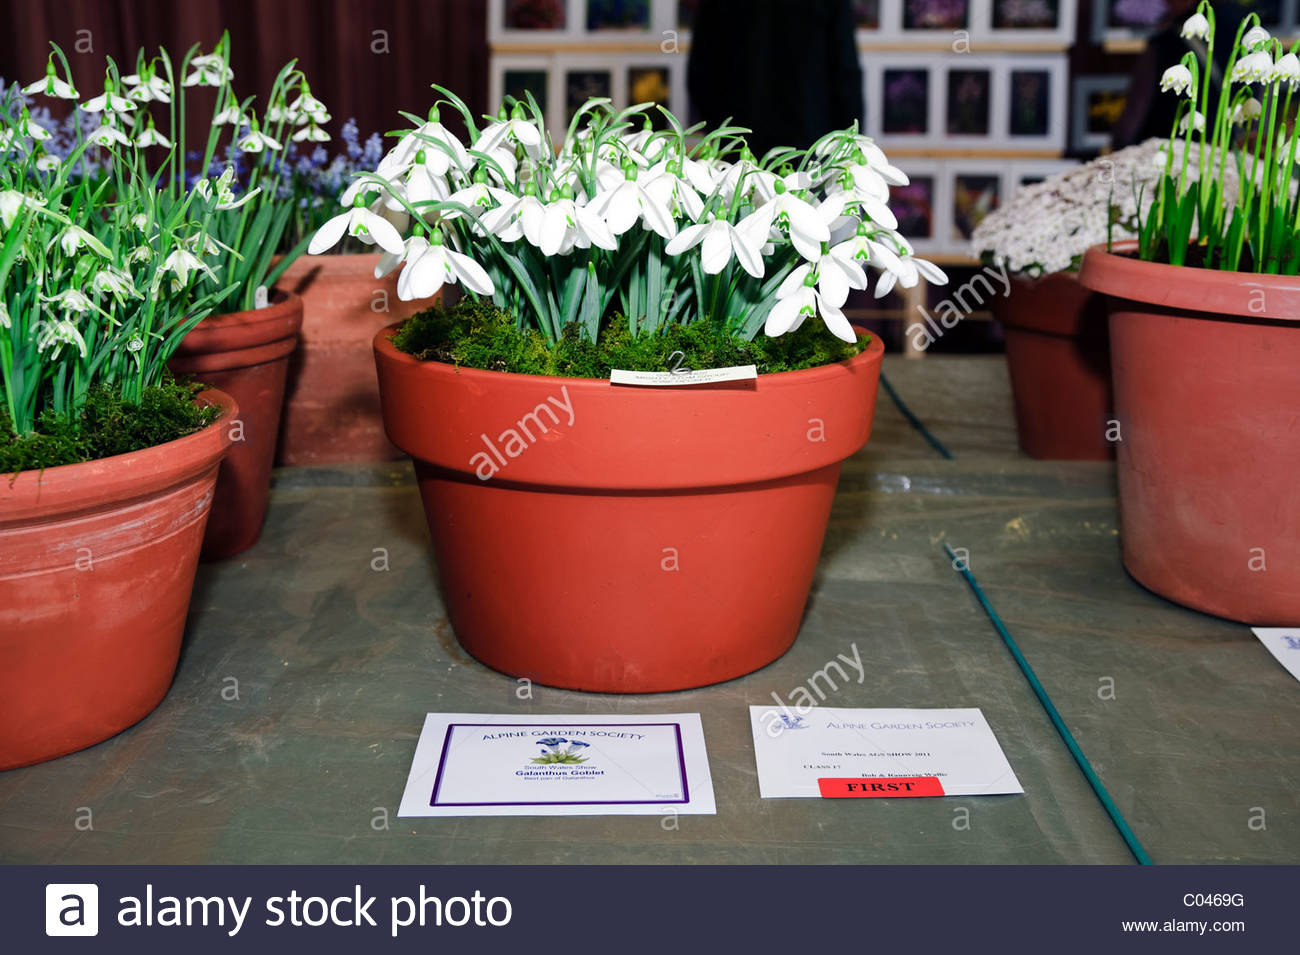 AGS Alpine Garden Society South Wales show 2011. Galanthus mighty atom 'ione hecker' won the galanthus goblet. - Stock Image